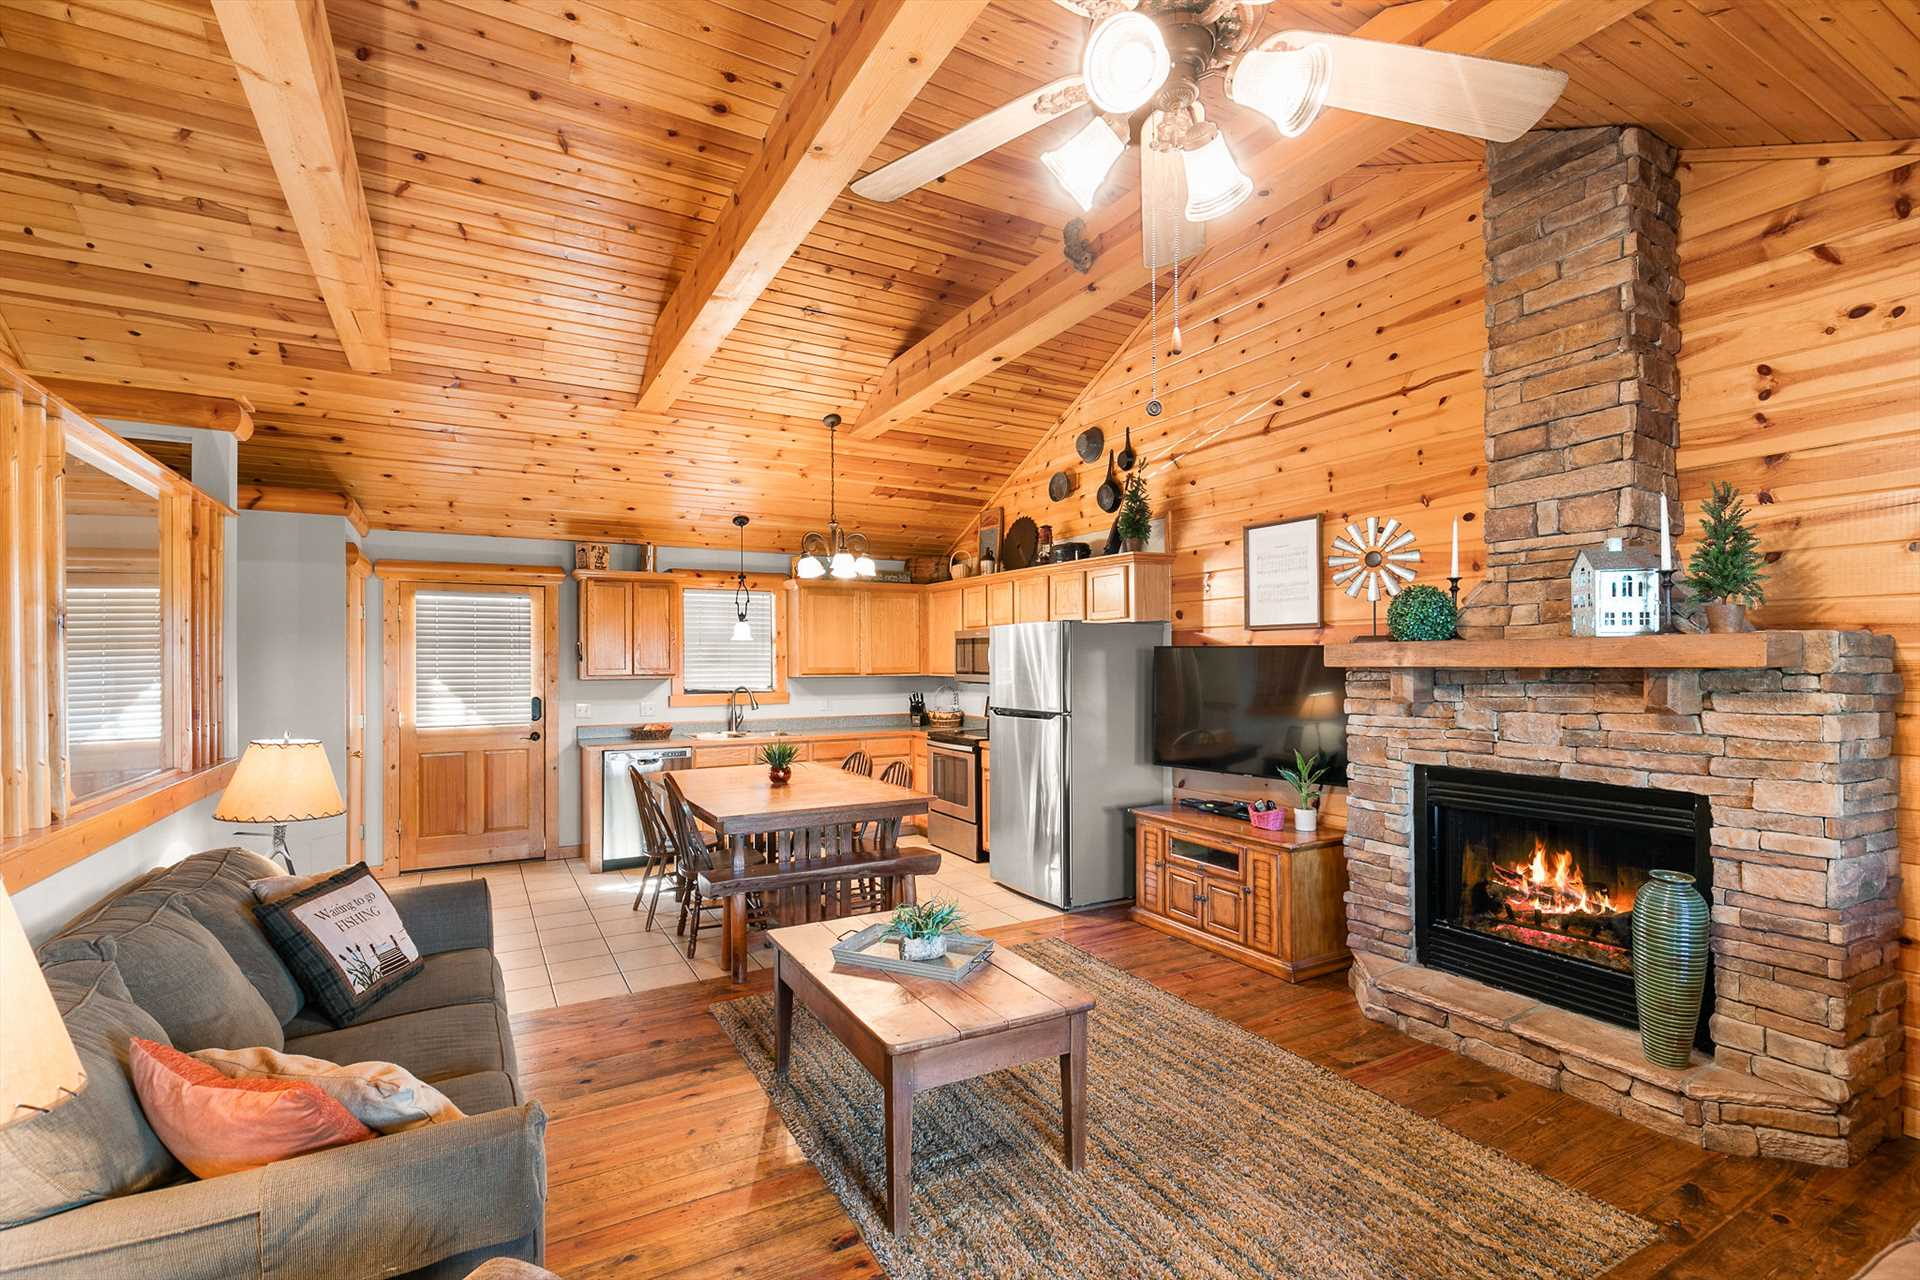 The open floor plan gives the whole family plenty of room to